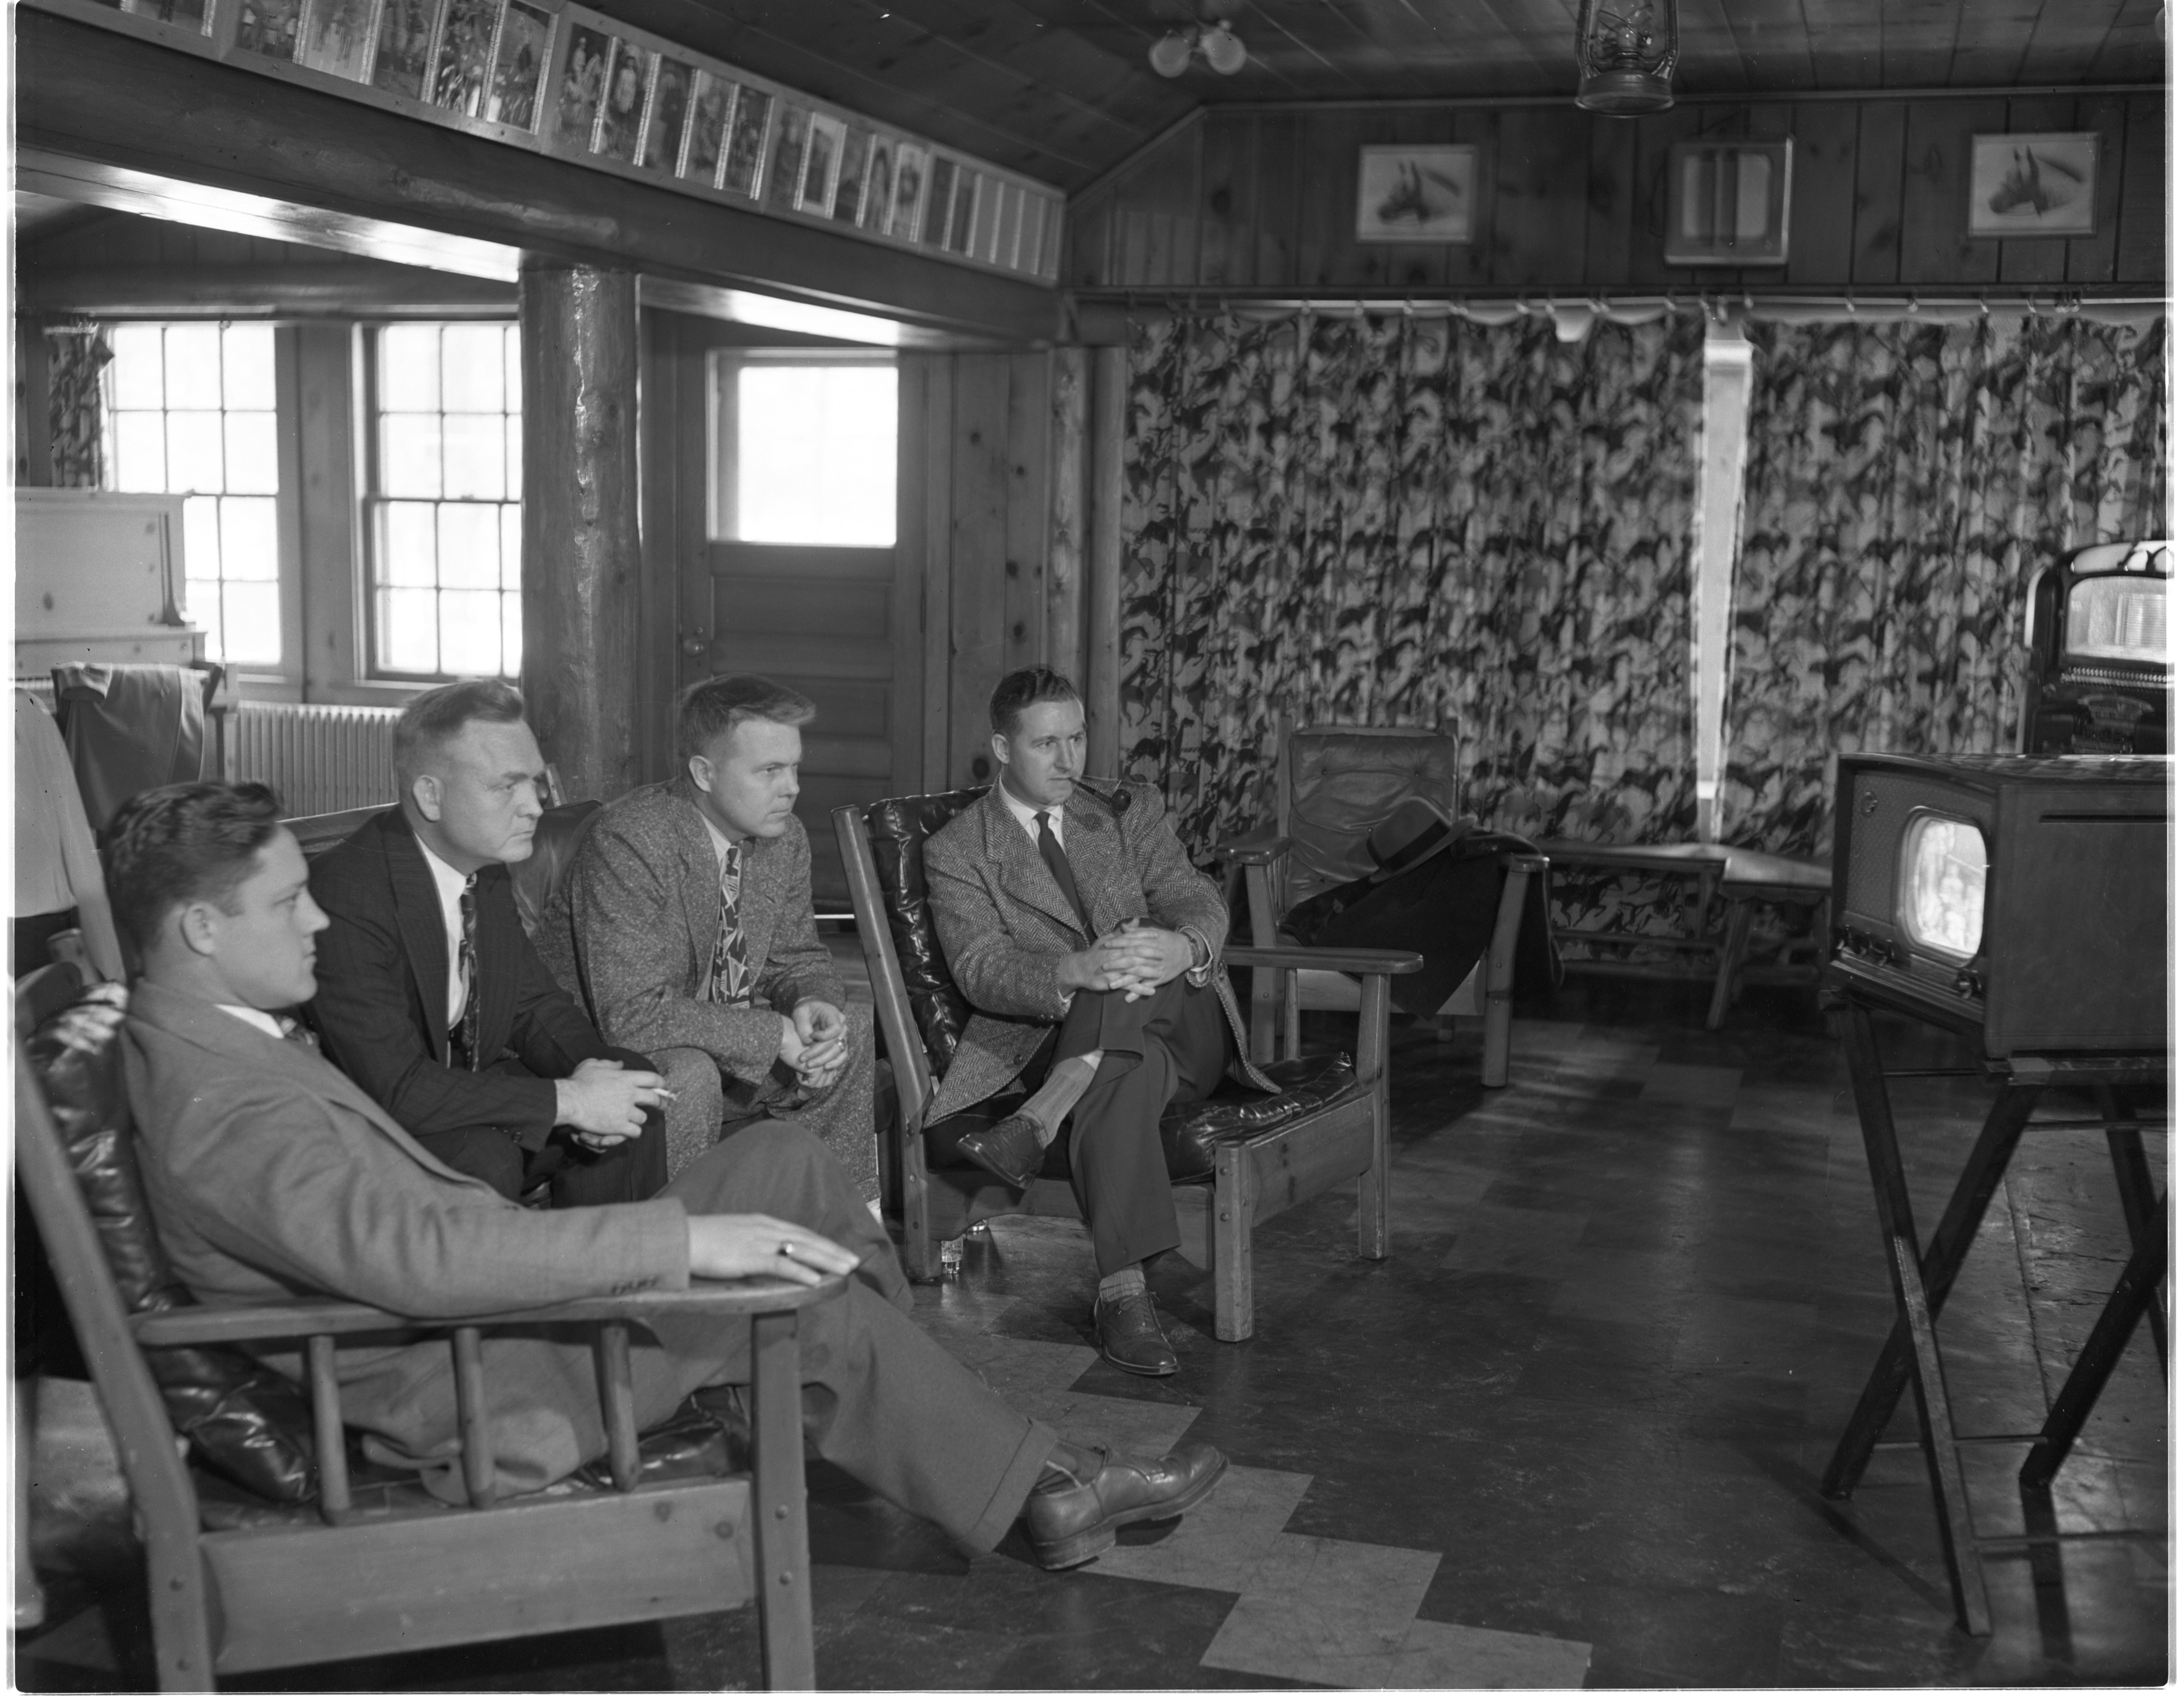 Air Force Officers Stationed At The University Of Michigan Watch The Army-Navy Football Game On TV At The Saddle Ridge Club - November 26, 1949 image